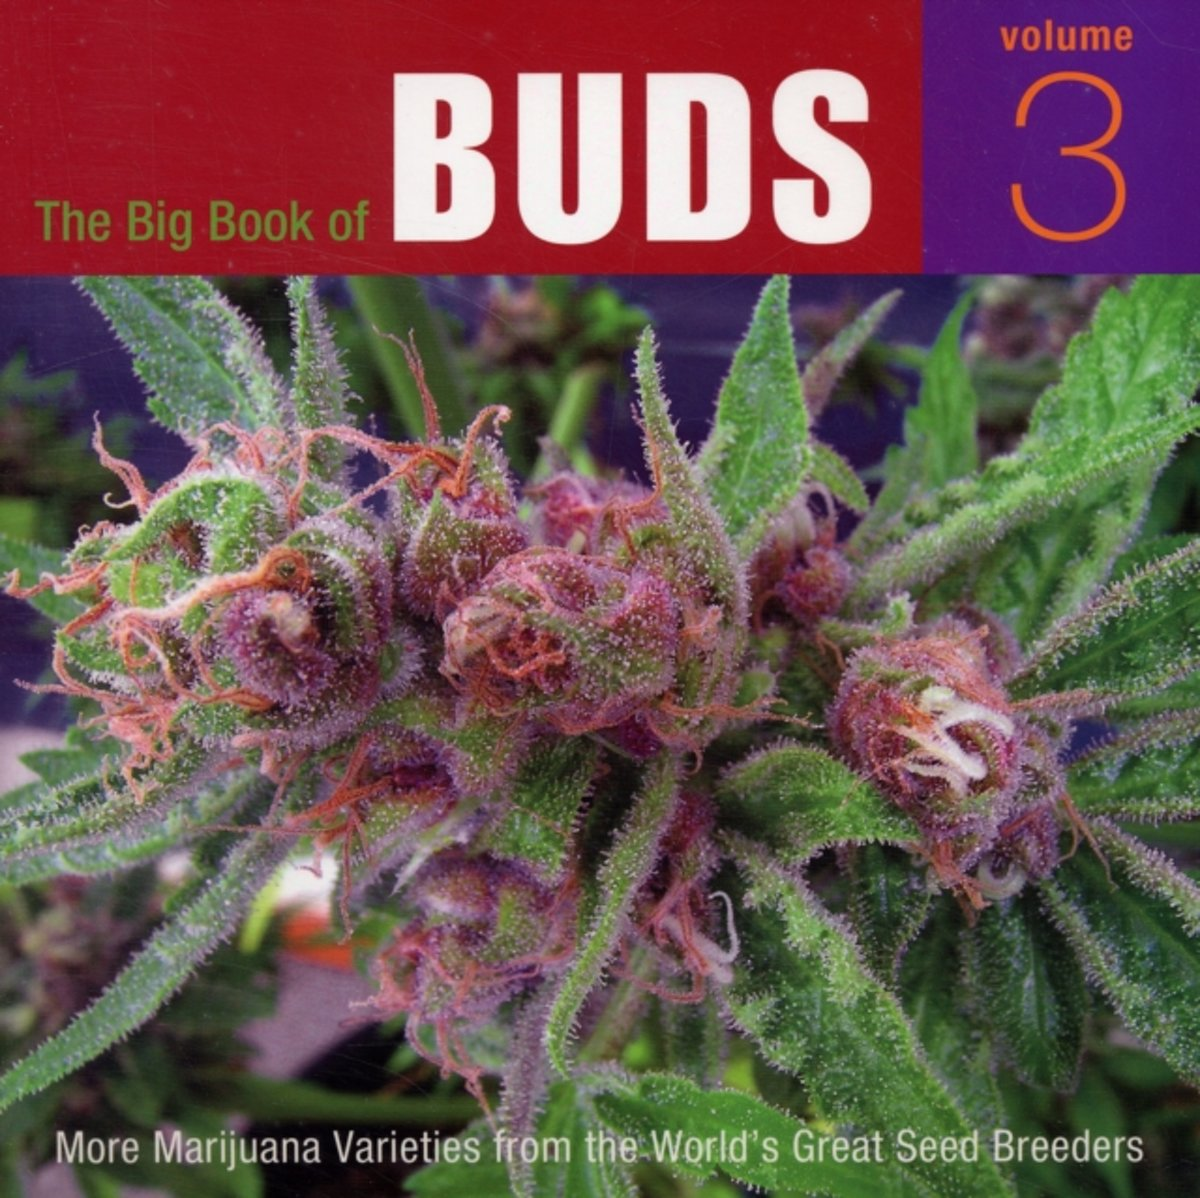 The Big Book Of Buds, Vol. 3